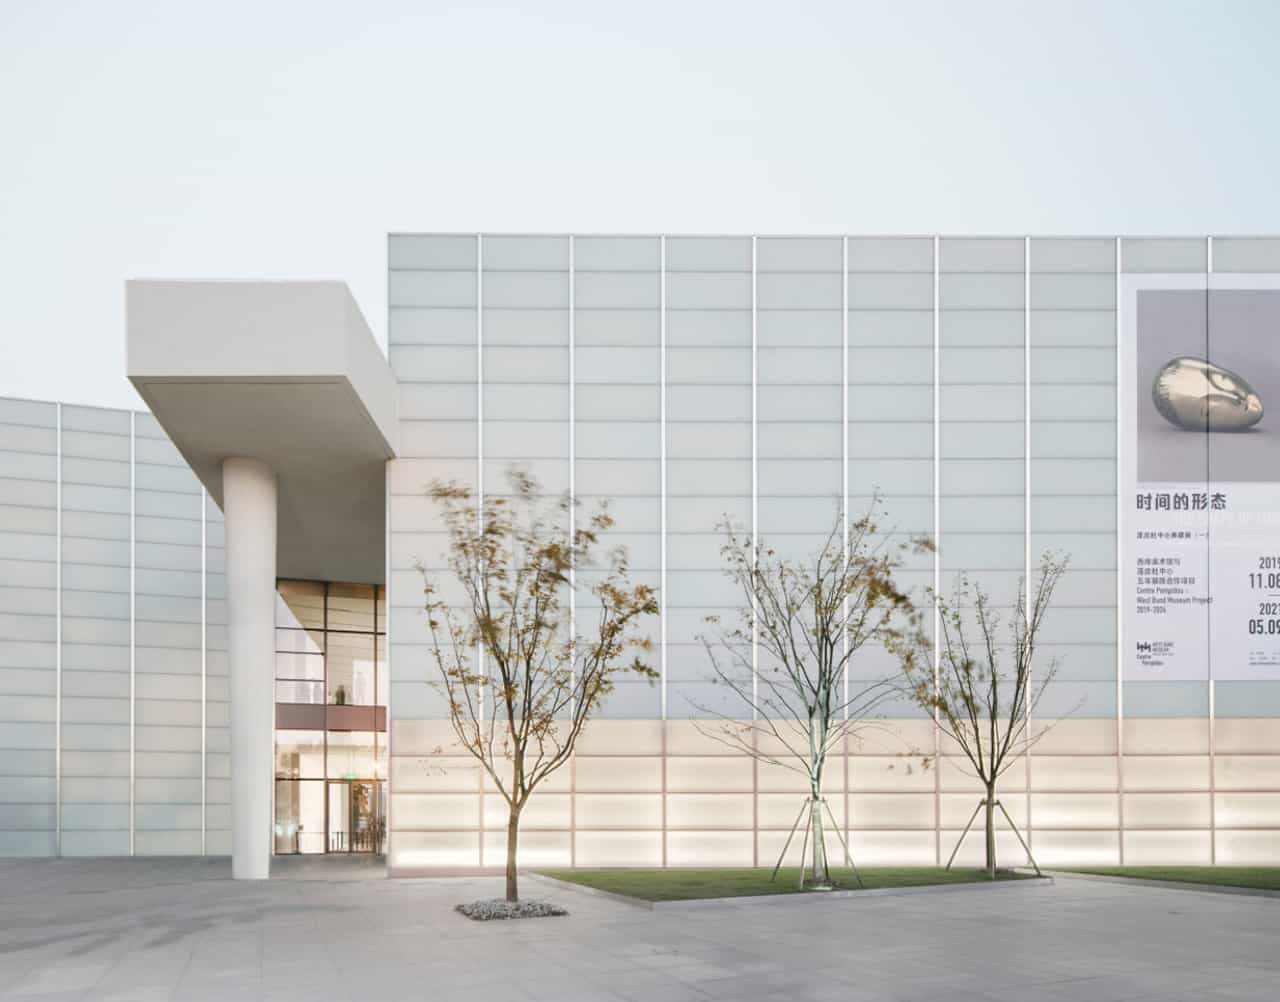 West Bund Museum in Shanghai. Image: © David Chipperfield Architects